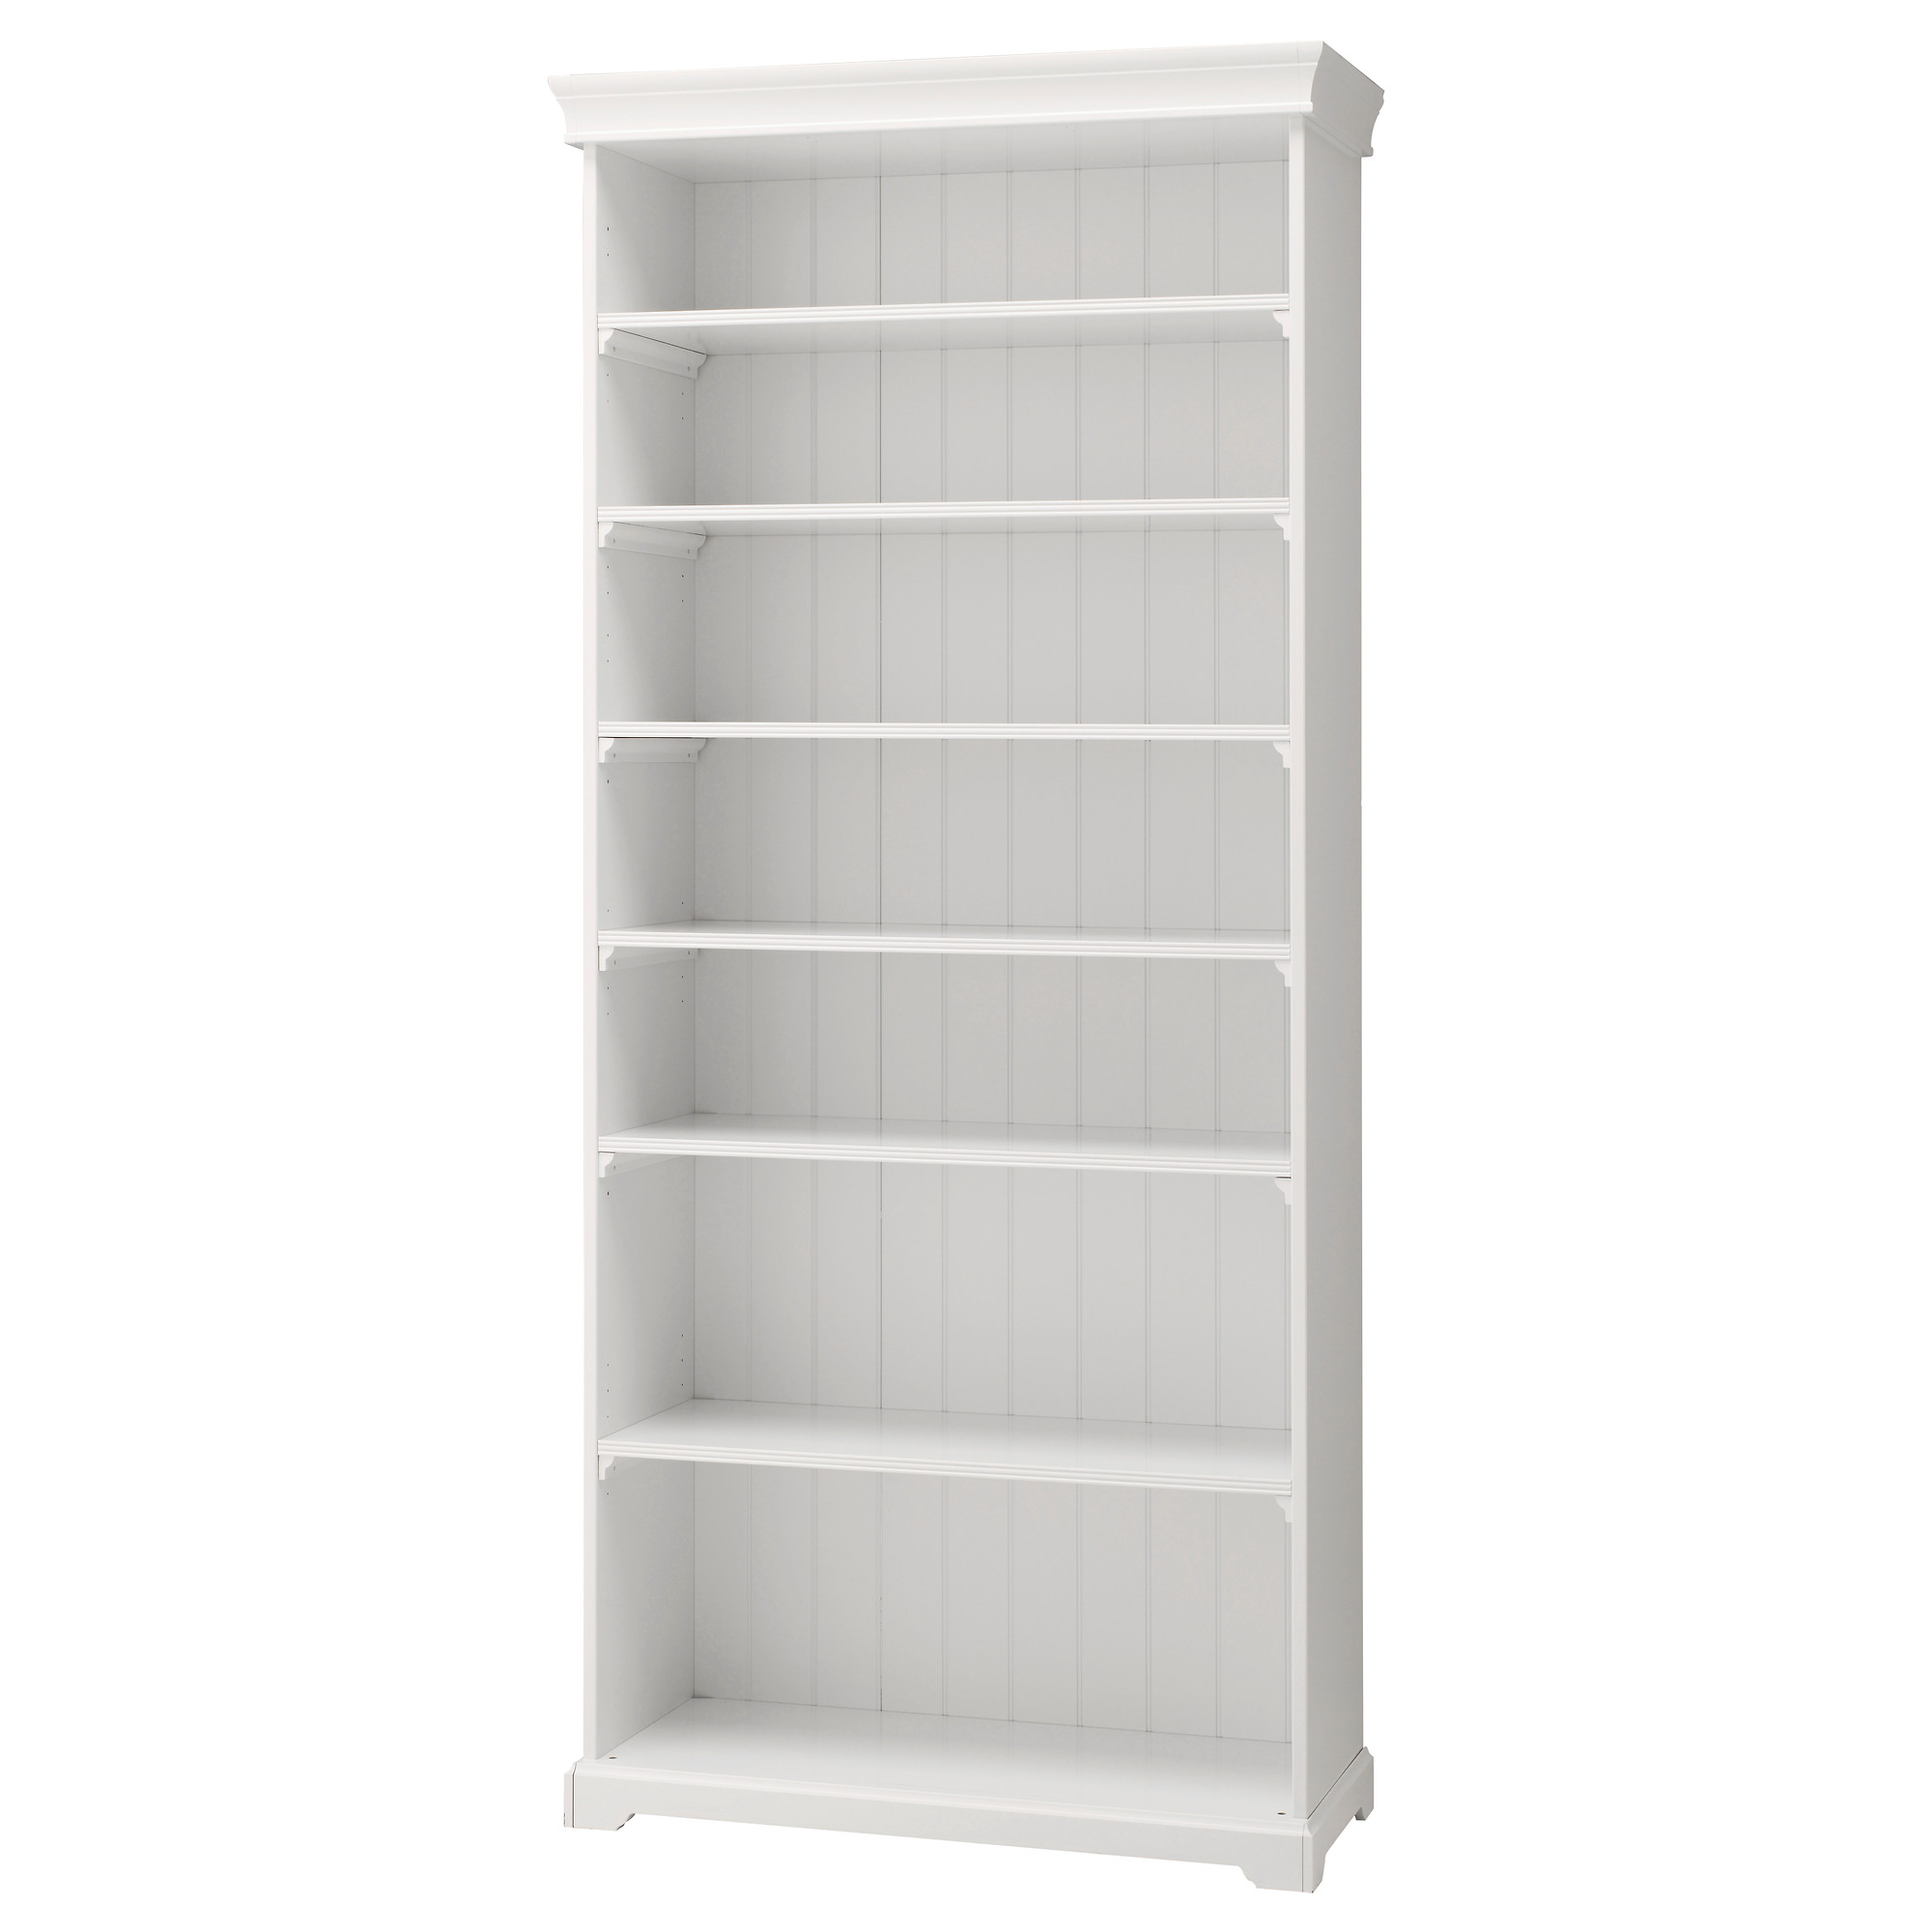 white bookshelves liatorp bookcase - white - ikea XJRMNLG